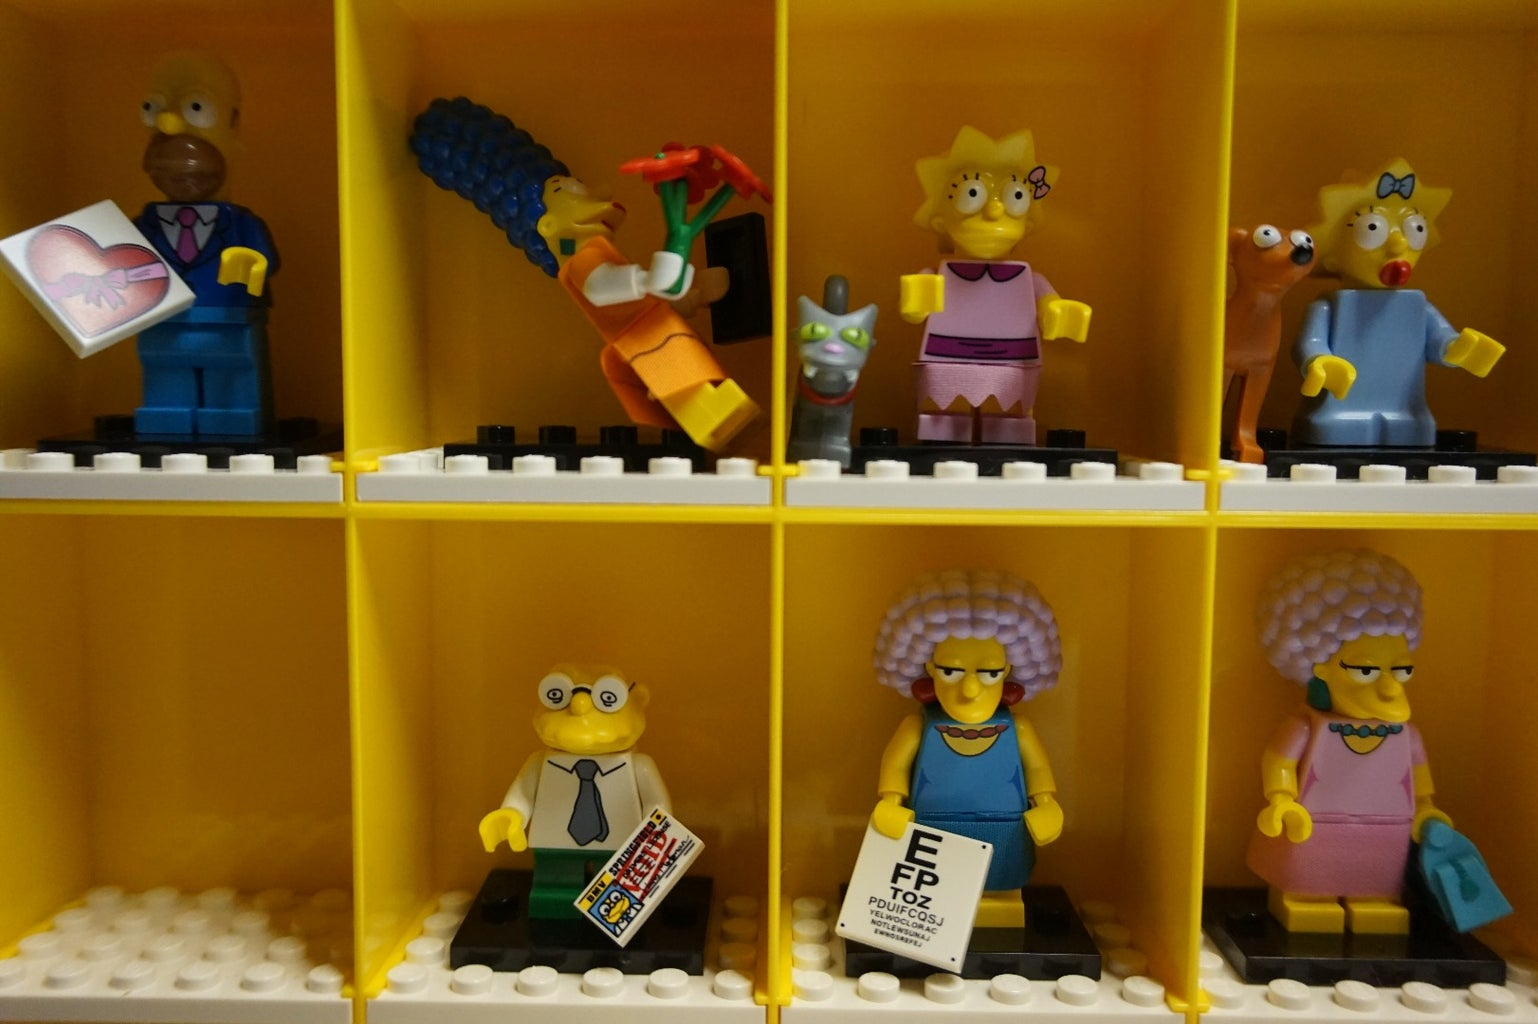 Lego Minifig Display Case Mod for Simpsons Minifigs